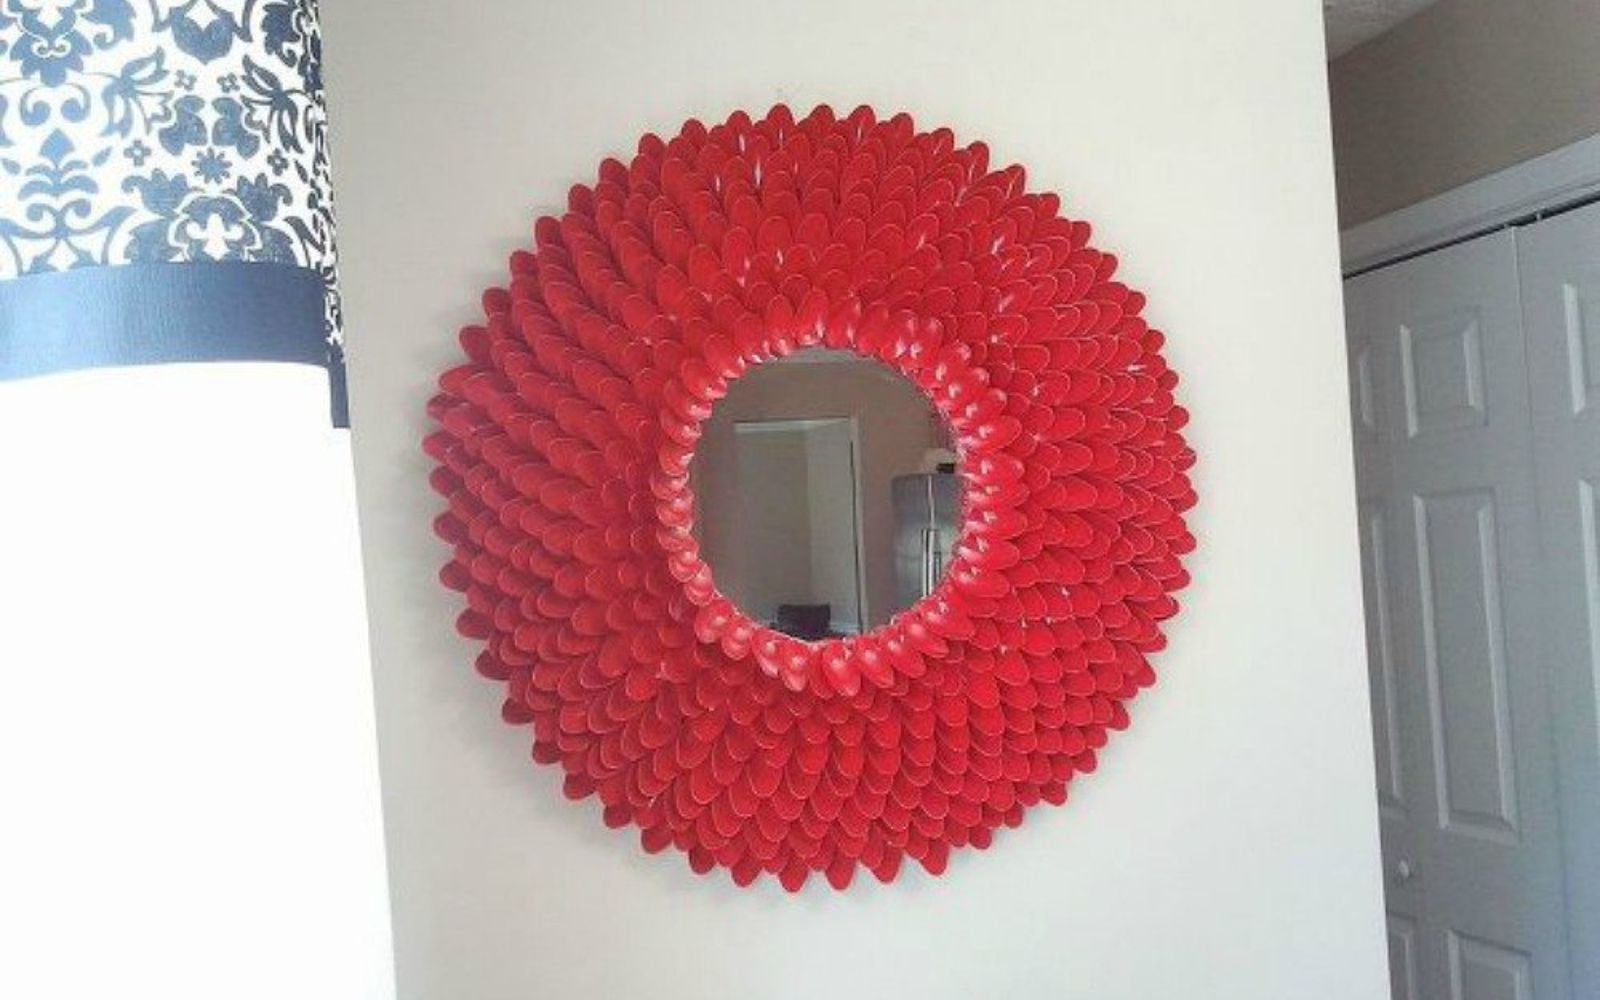 s 11 brilliant ways to reuse plastic spoons, Or turn them into a chic circle mirror